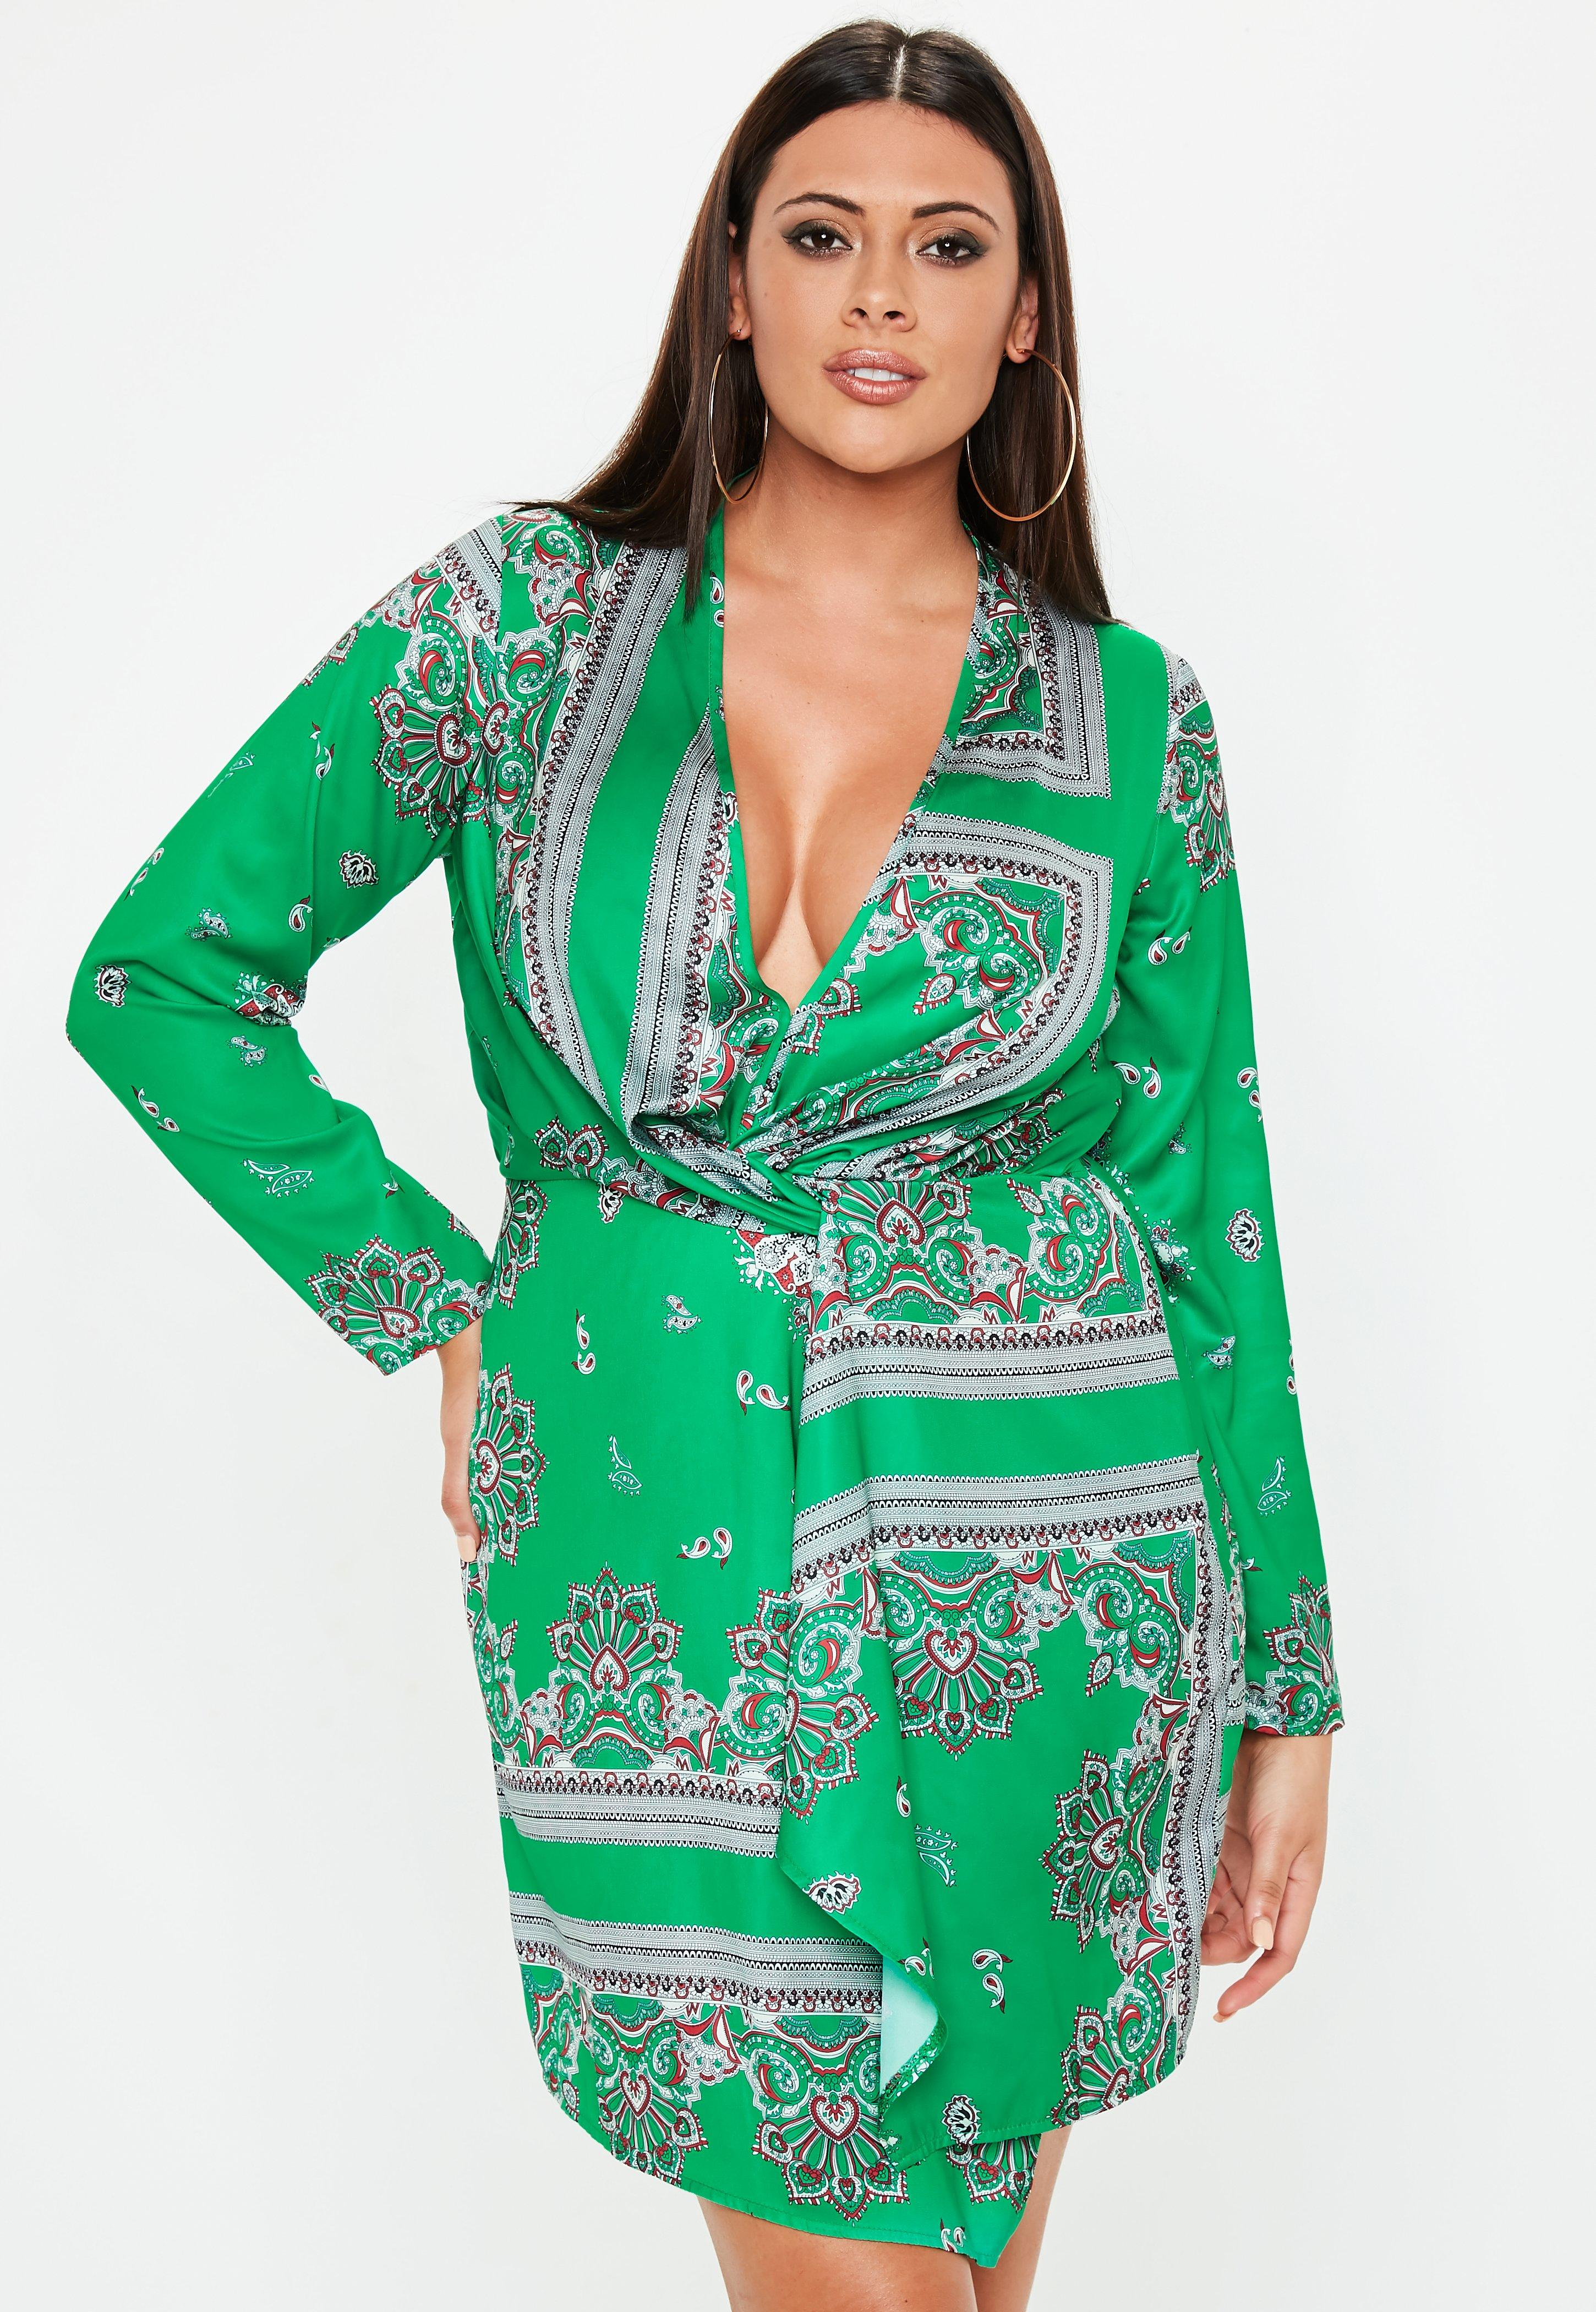 Plus Size Clothing & Plus Size Womens Fashion - Missguided+